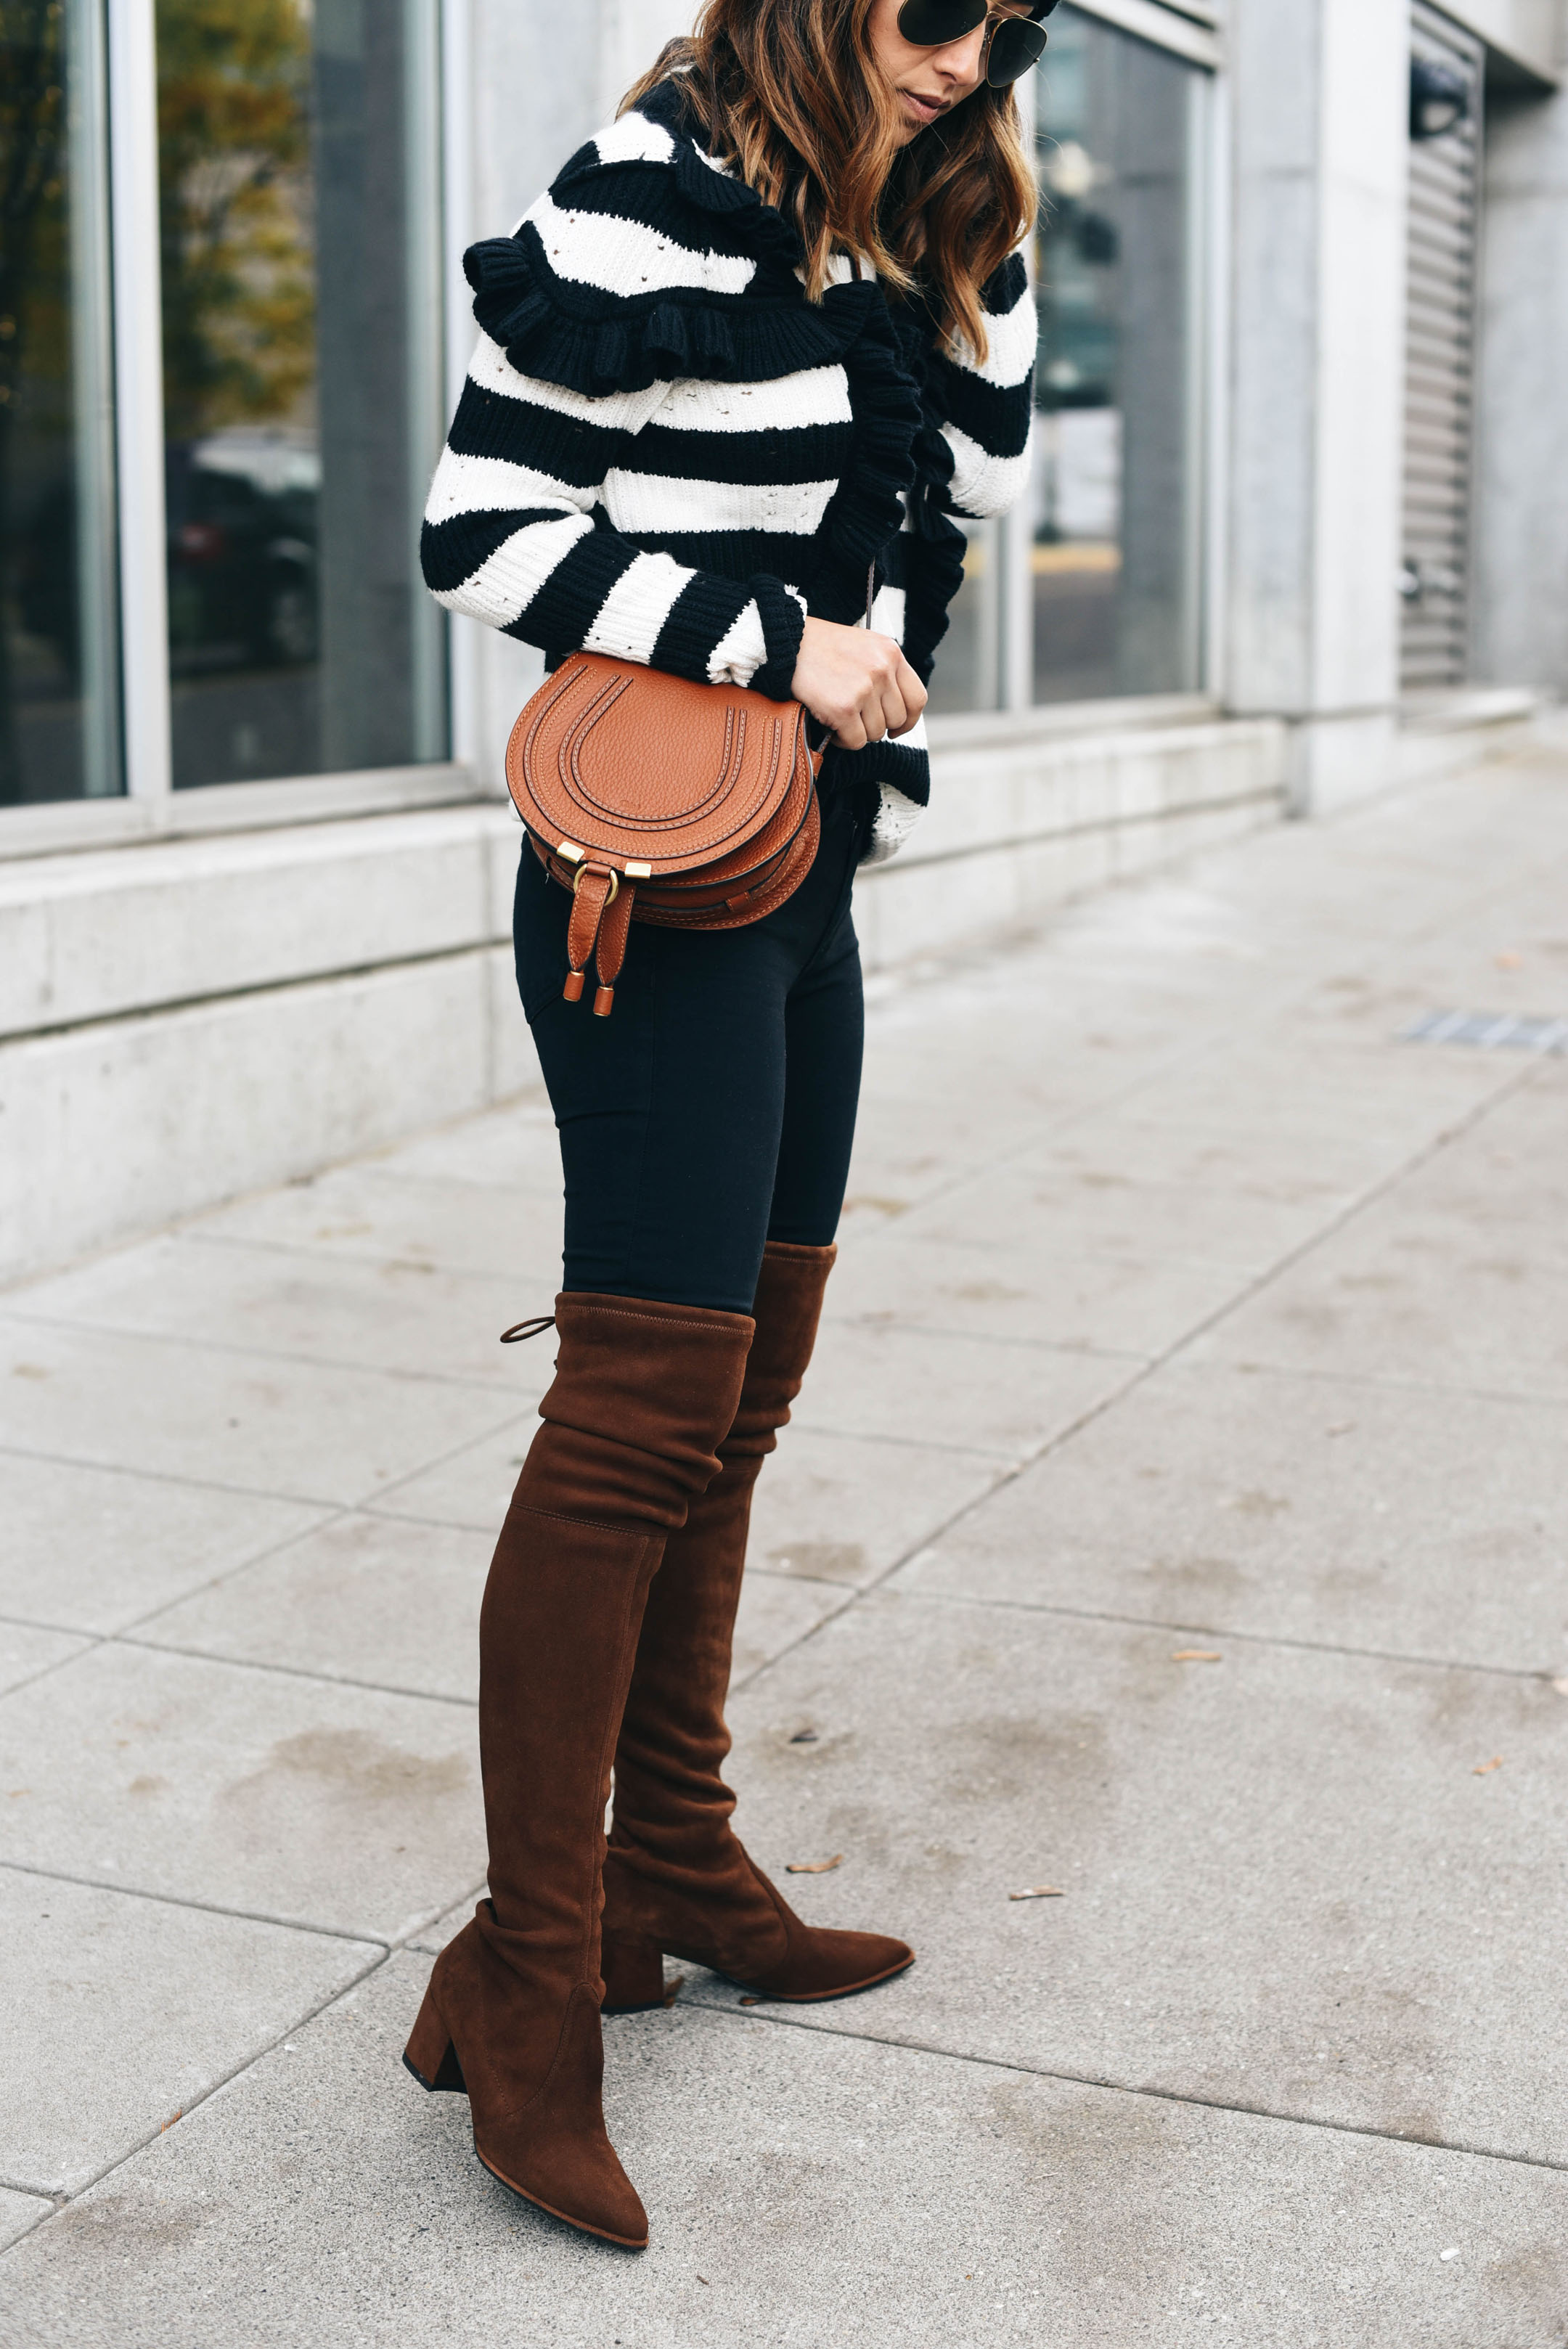 b94e33d69ba What to Look for When Shopping for Over-the-Knee Boots - Crystalin Marie